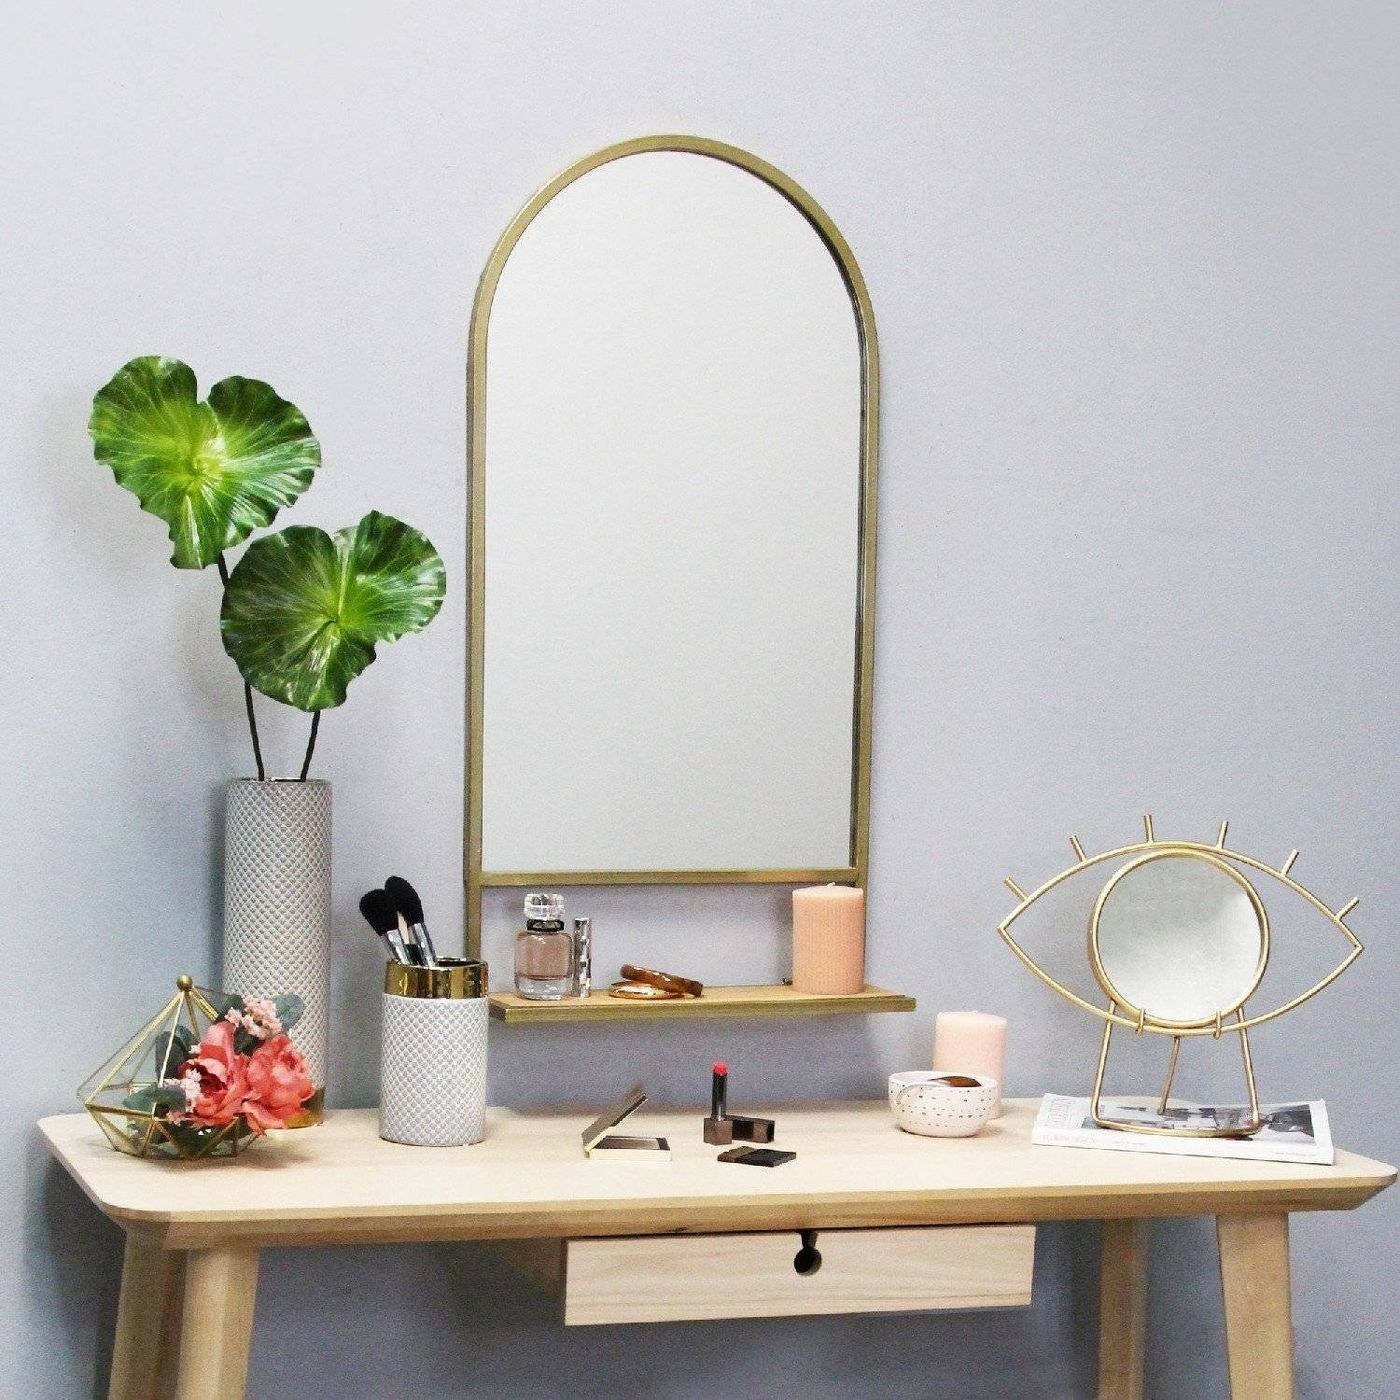 The mirror, which has a gold-toned rim, an arched top and rectangular bottom, and a collapsible shelf on the bottom